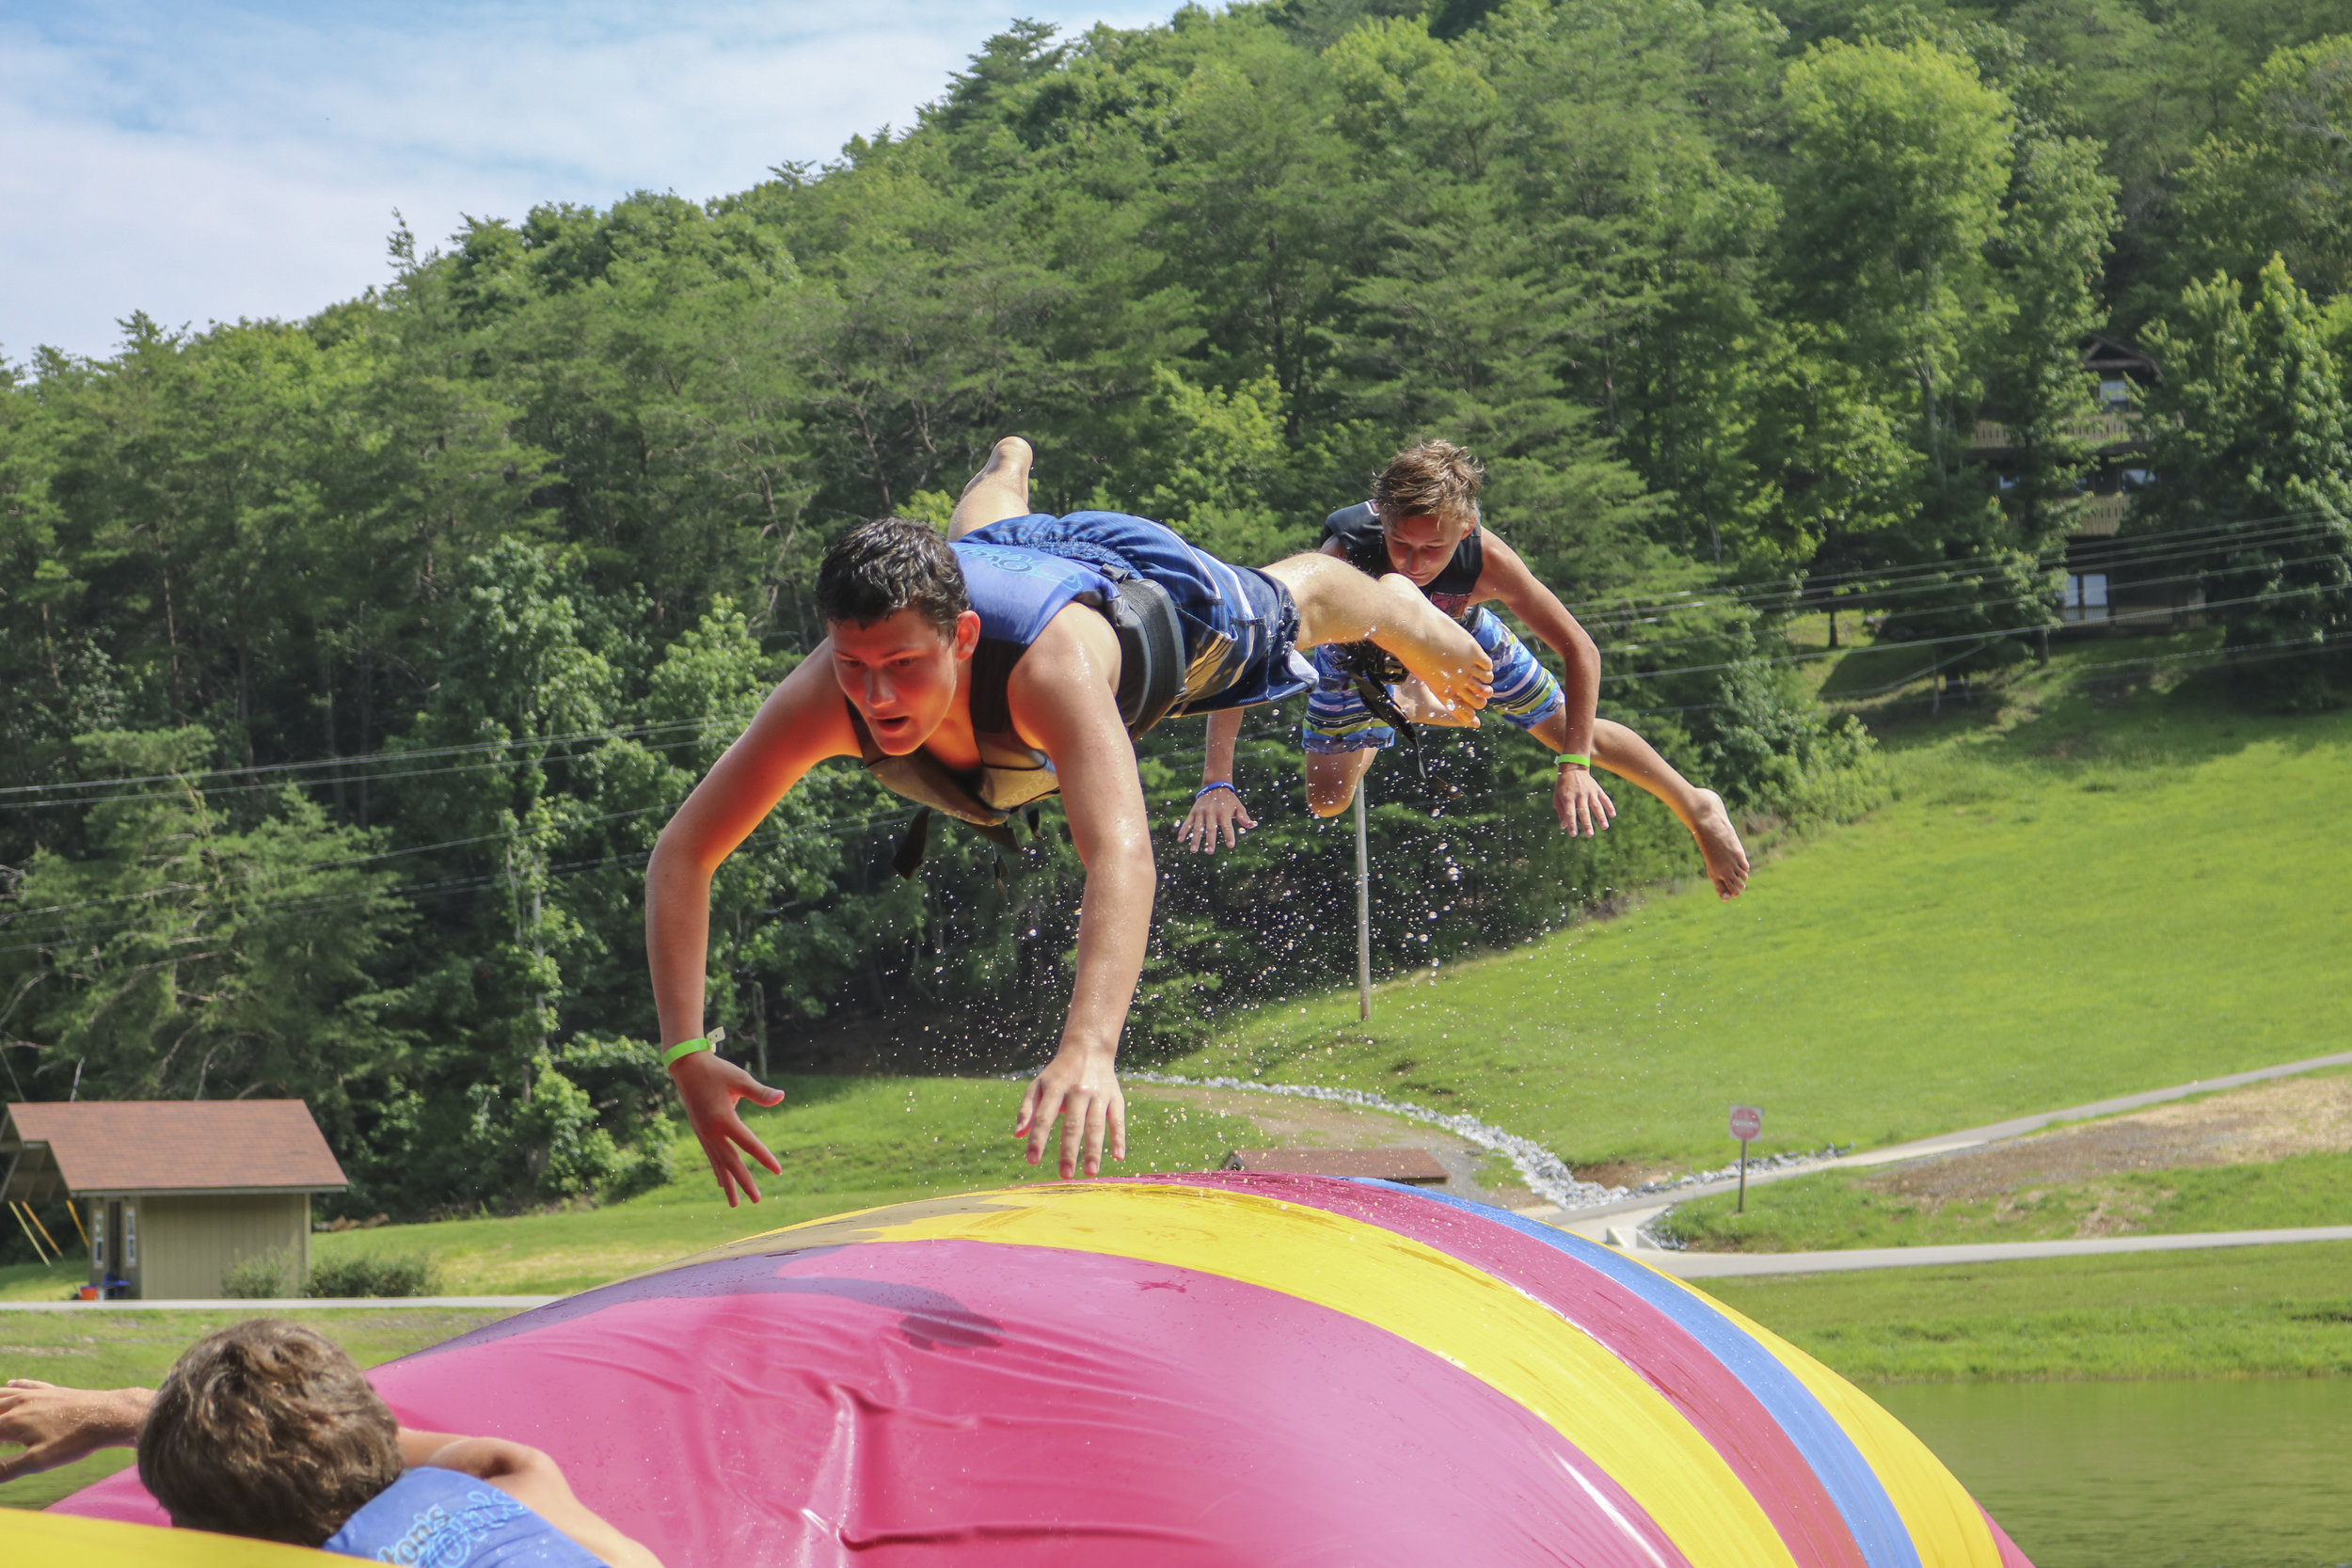 Mini Water Park - Ride our 150-foot waterslide, soar on our giant swing, and experience the blob (our giant air-filled pillow)! Adults (13+): $5.00, Ages 7-12: $3.00.